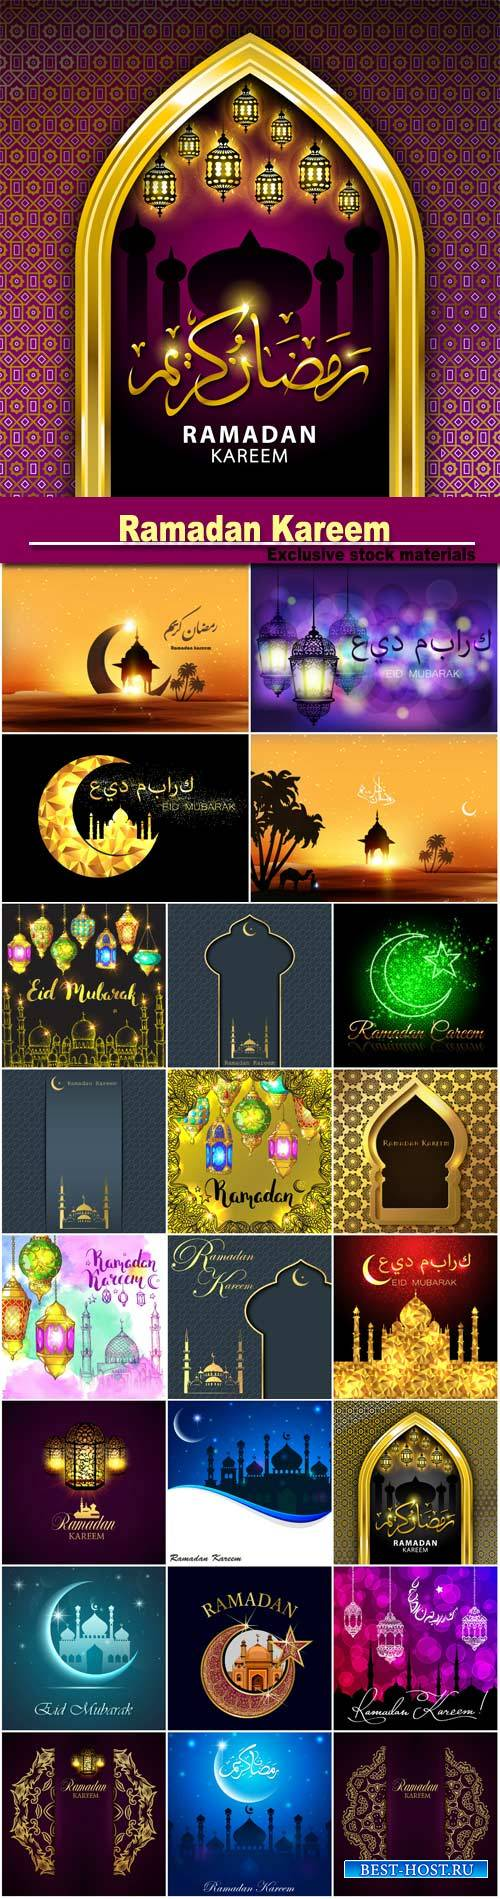 Ramadan Kareem, a Muslim holiday, beautiful backgrounds vector